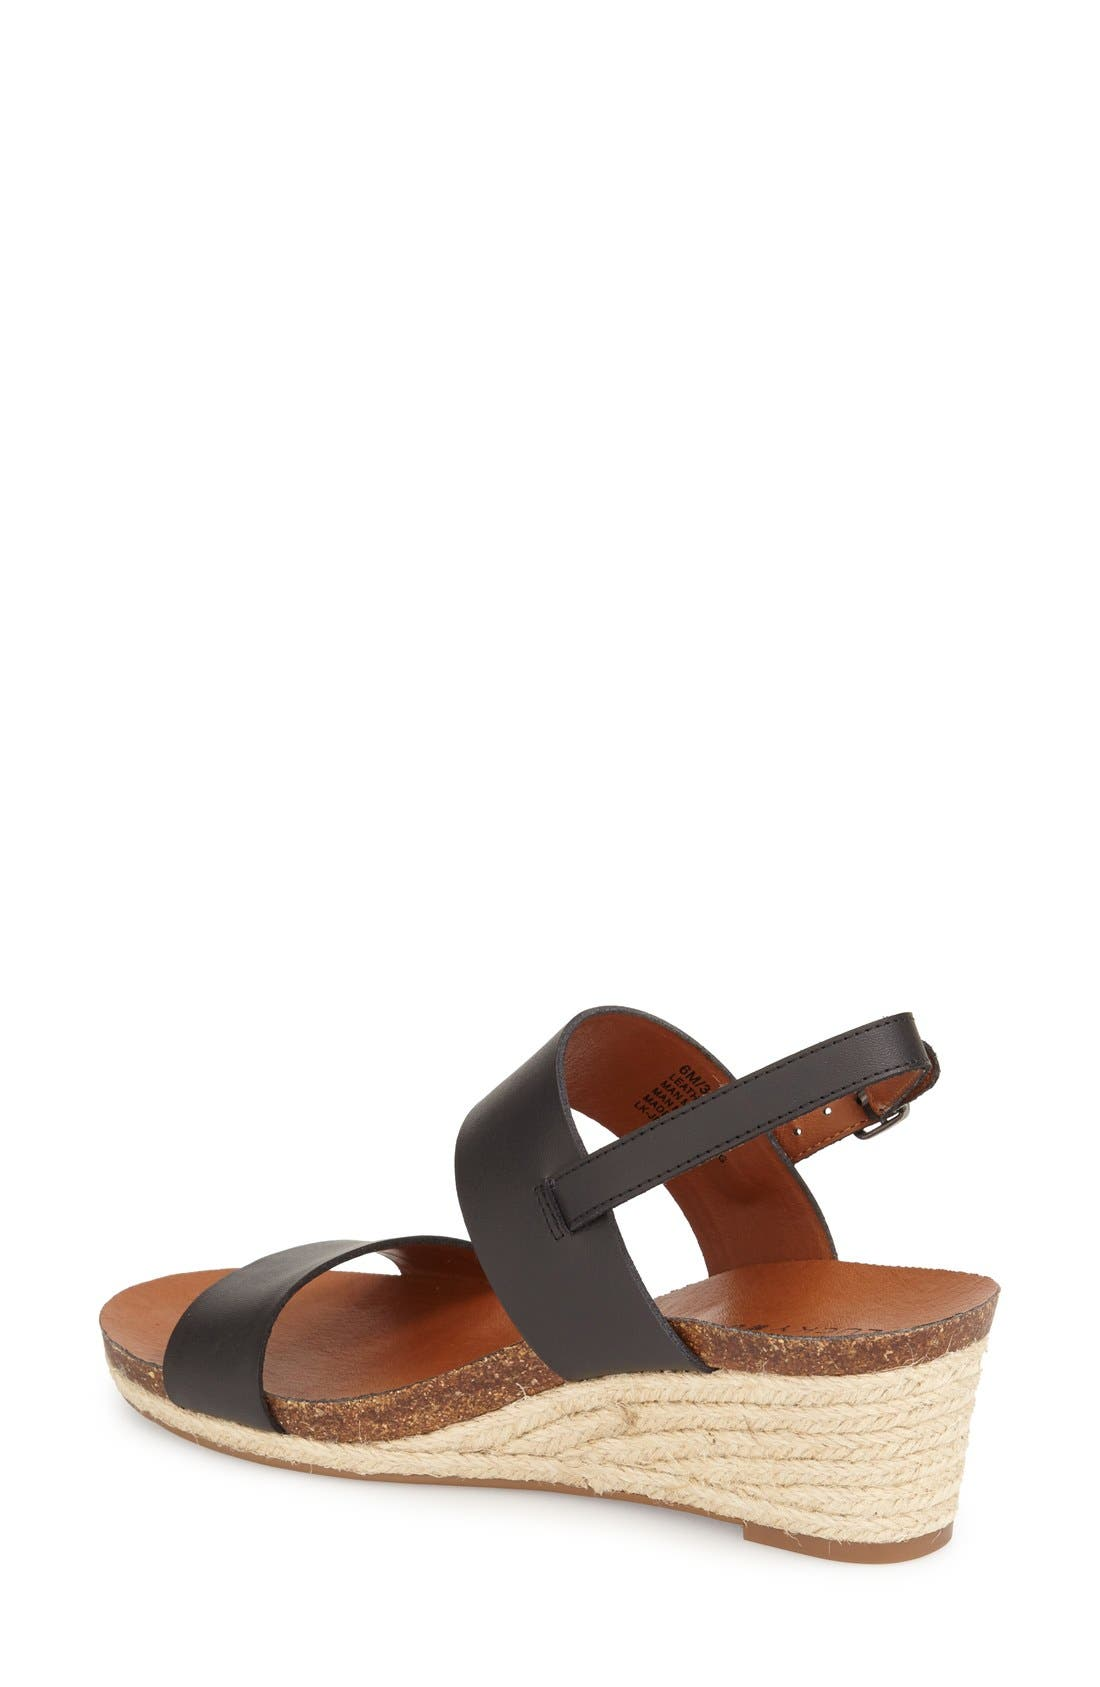 Alternate Image 2  - Lucky Brand 'Jette' Wedge Sandal (Women)